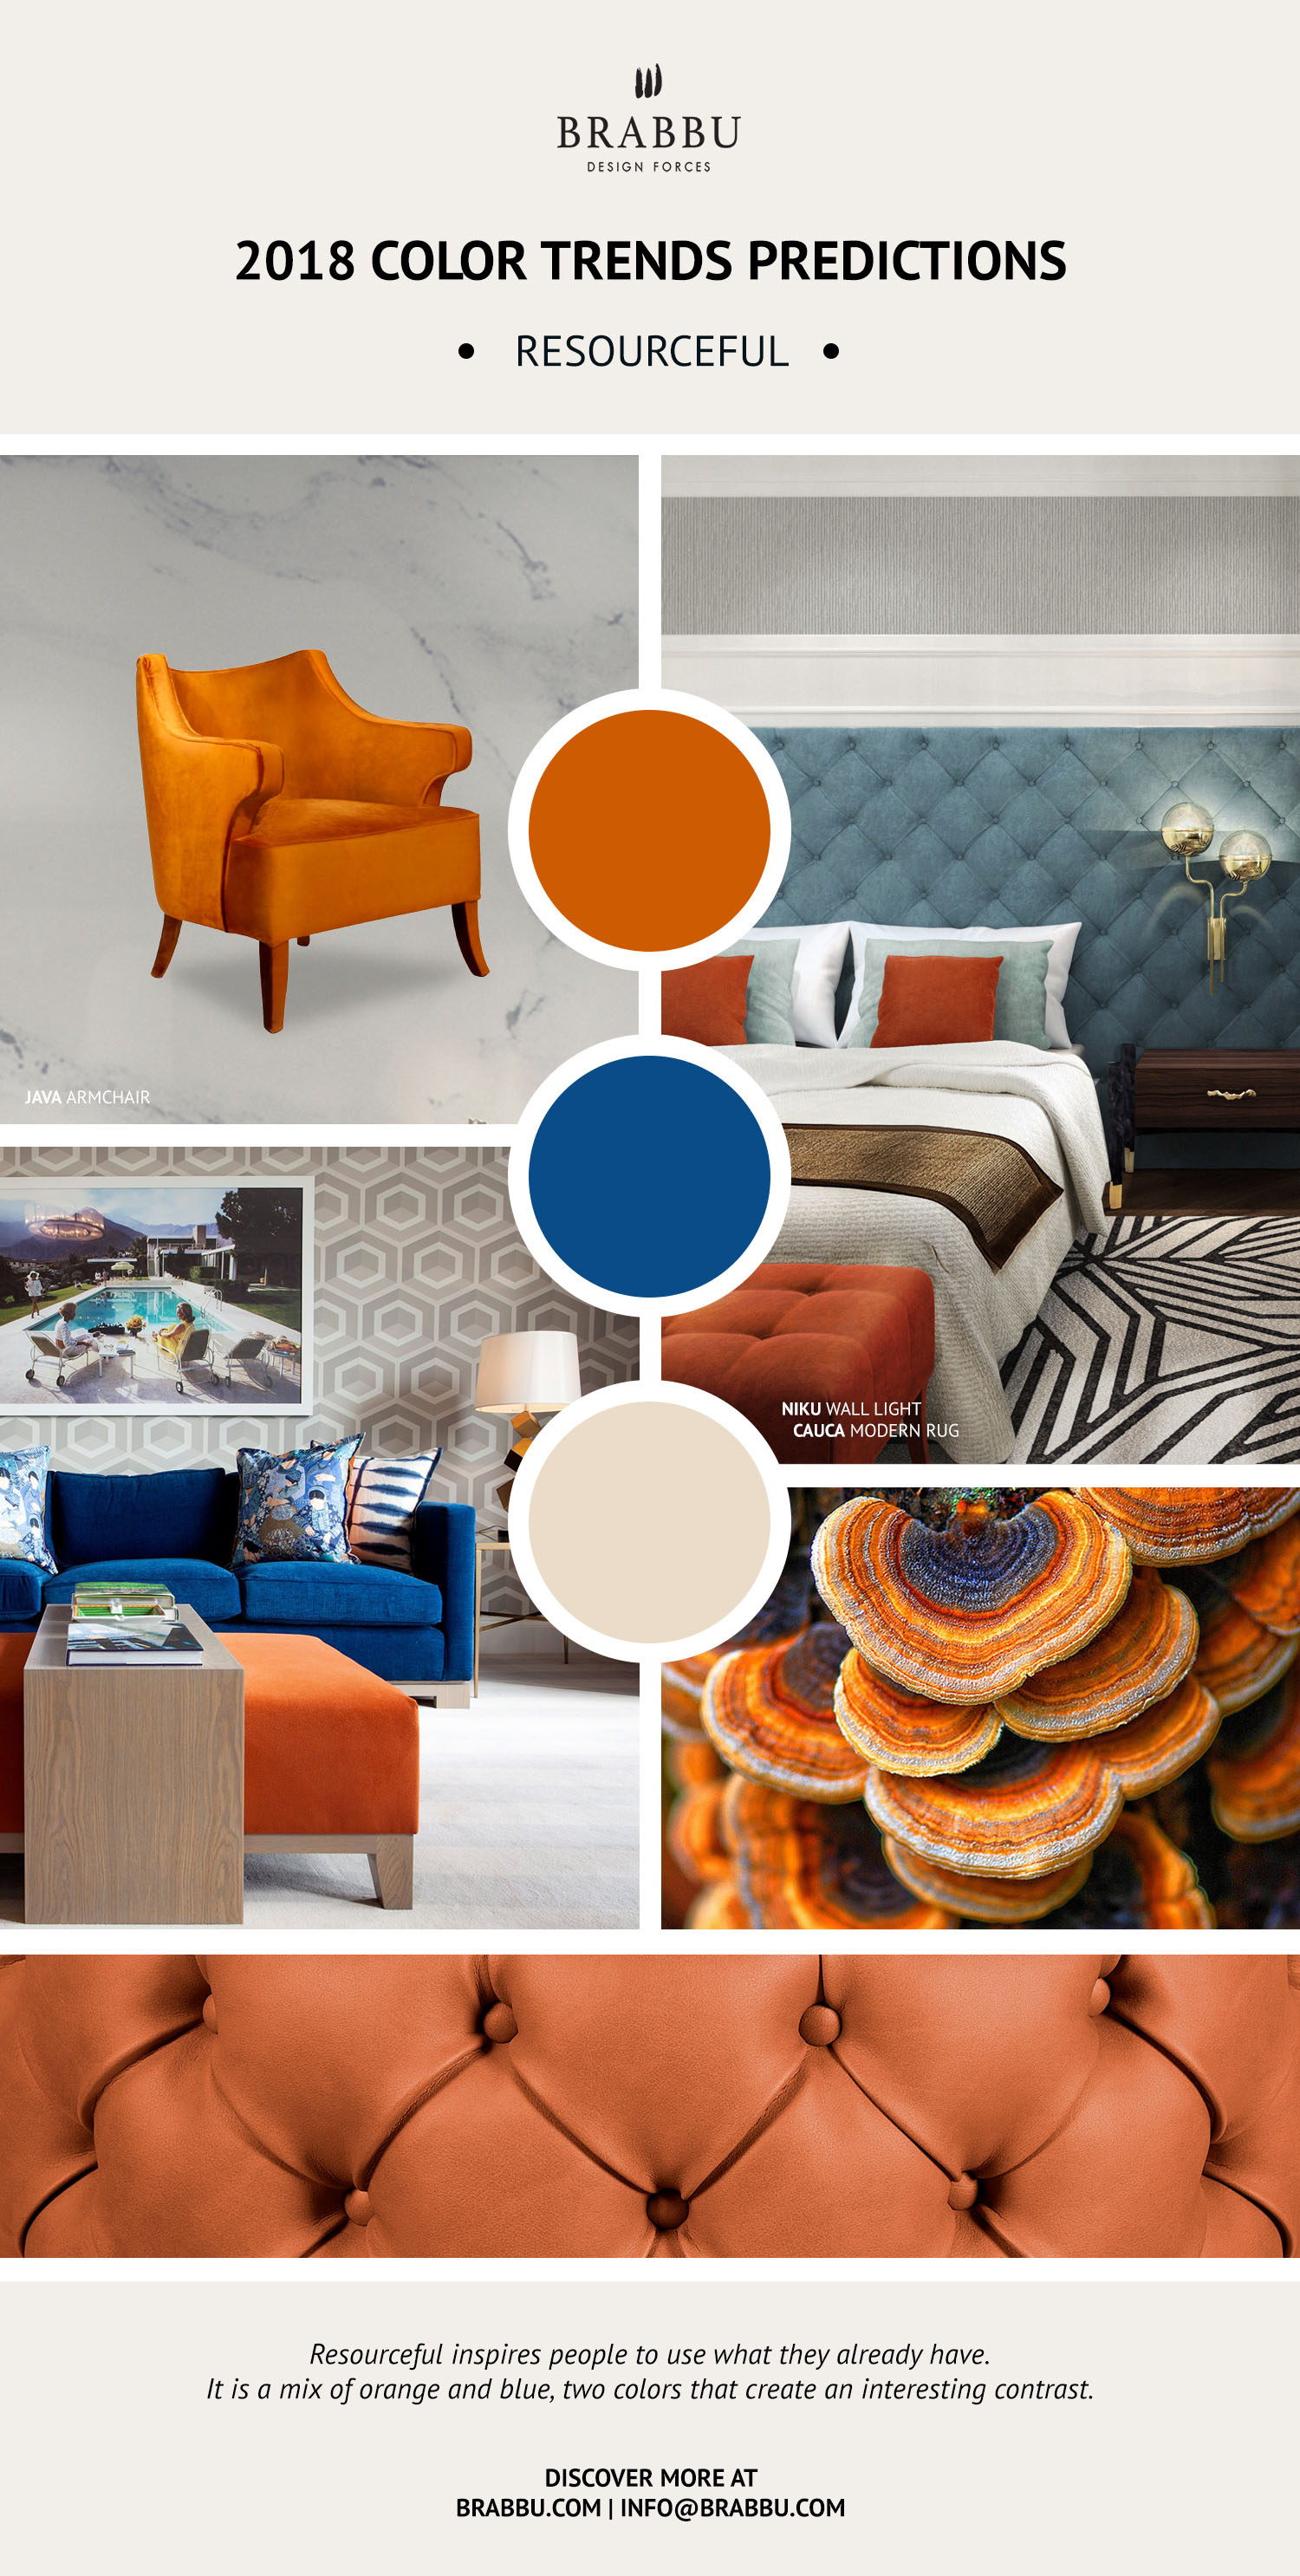 Pantone Color Trend Predictions For 2018 color trend Pantone Color Trend Predictions For 2018 3 1 modern Rugs design Incredible Spring Color Ideas for modern Rugs design 3 1